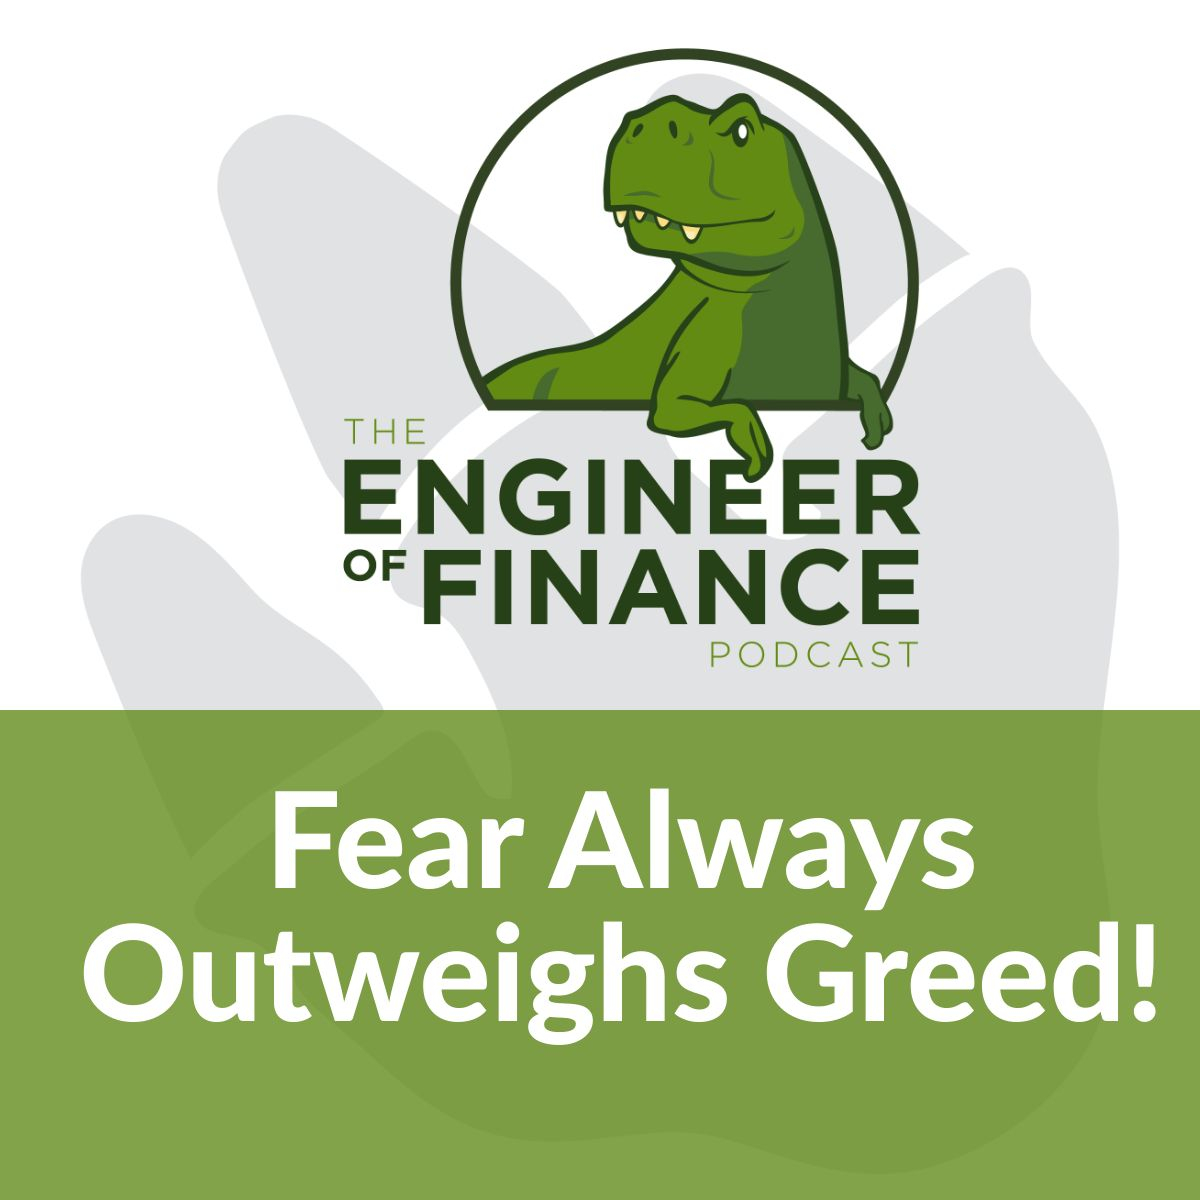 Fear Always Outweighs Greed! – Episode 115